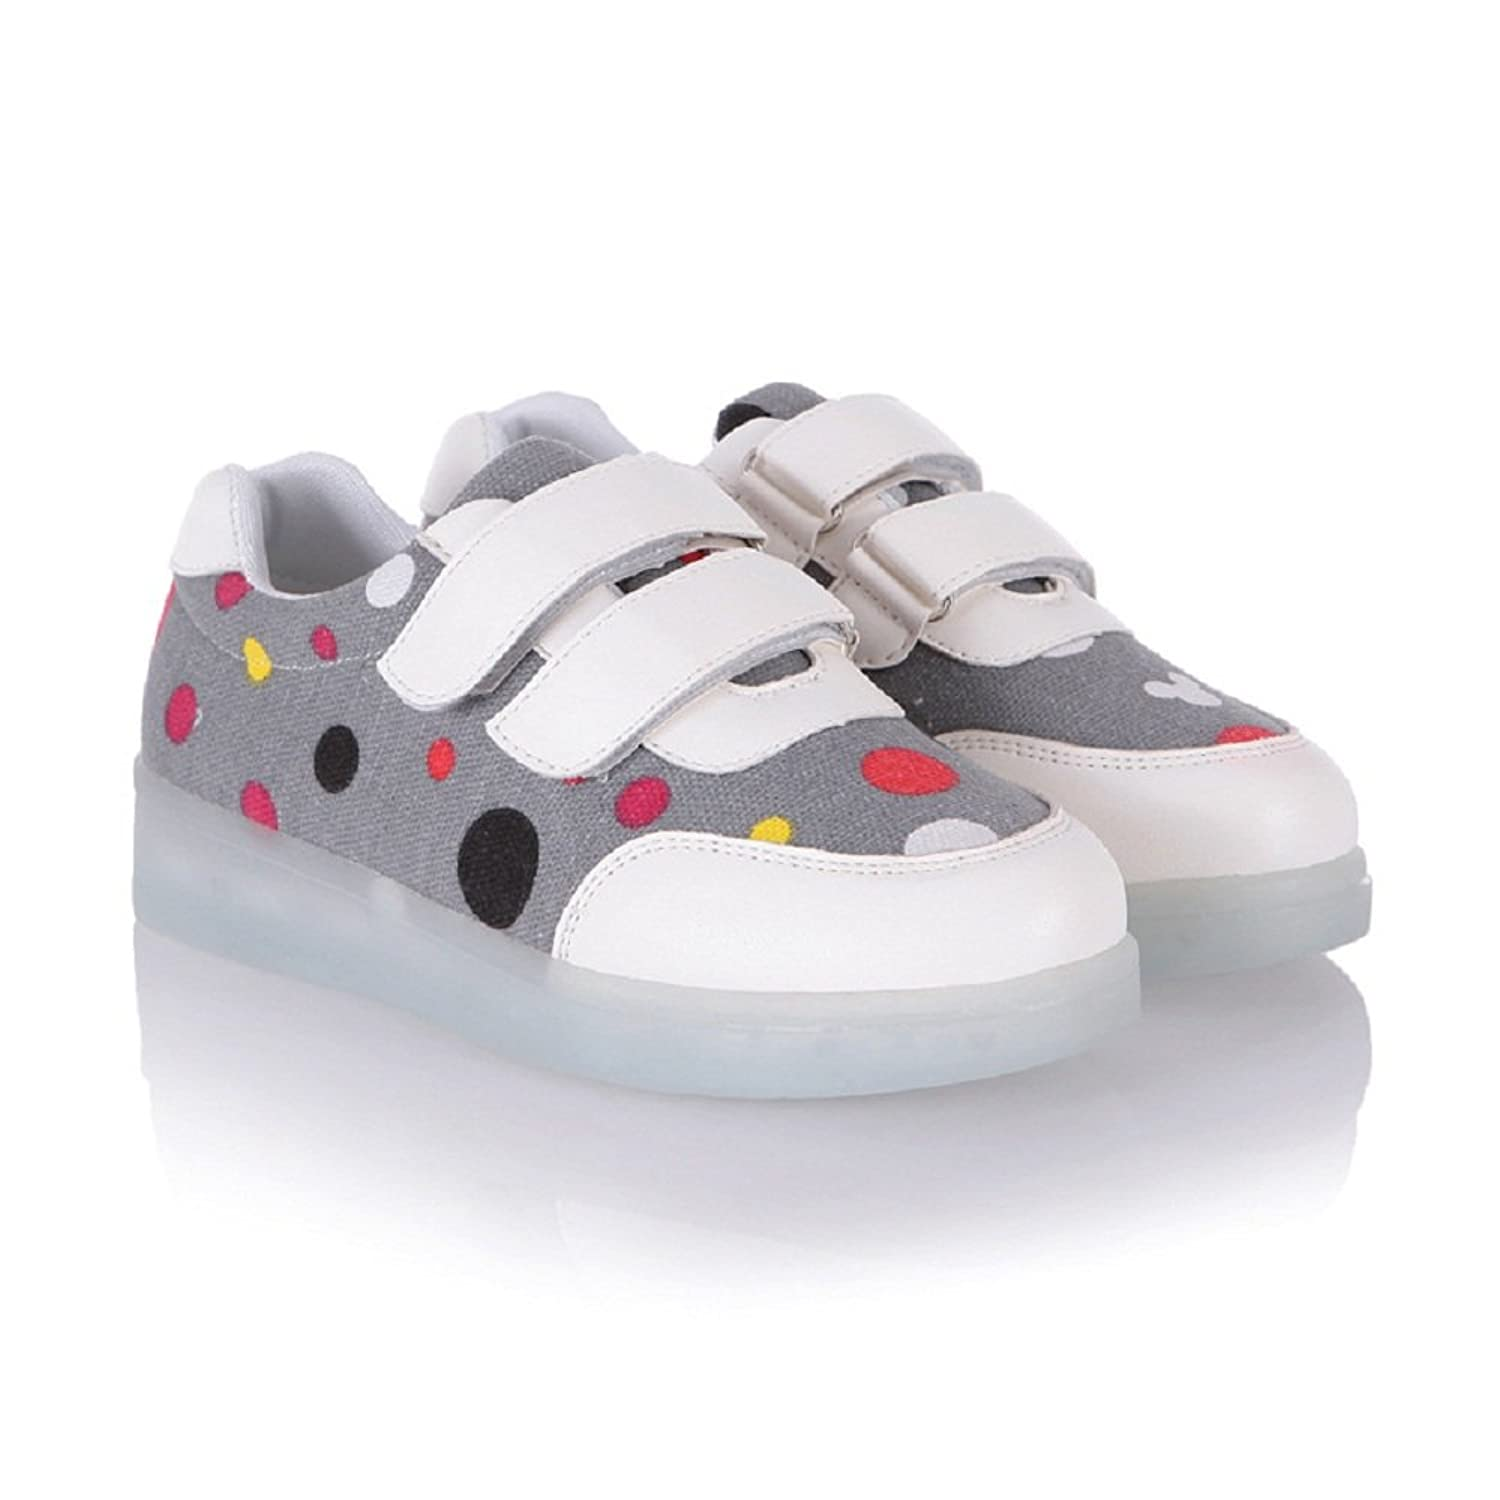 4c10fe294be451 2016 New Hot Sale Spring Children Sport With Led Lights Kids Kids Shoes for  Boys Girl